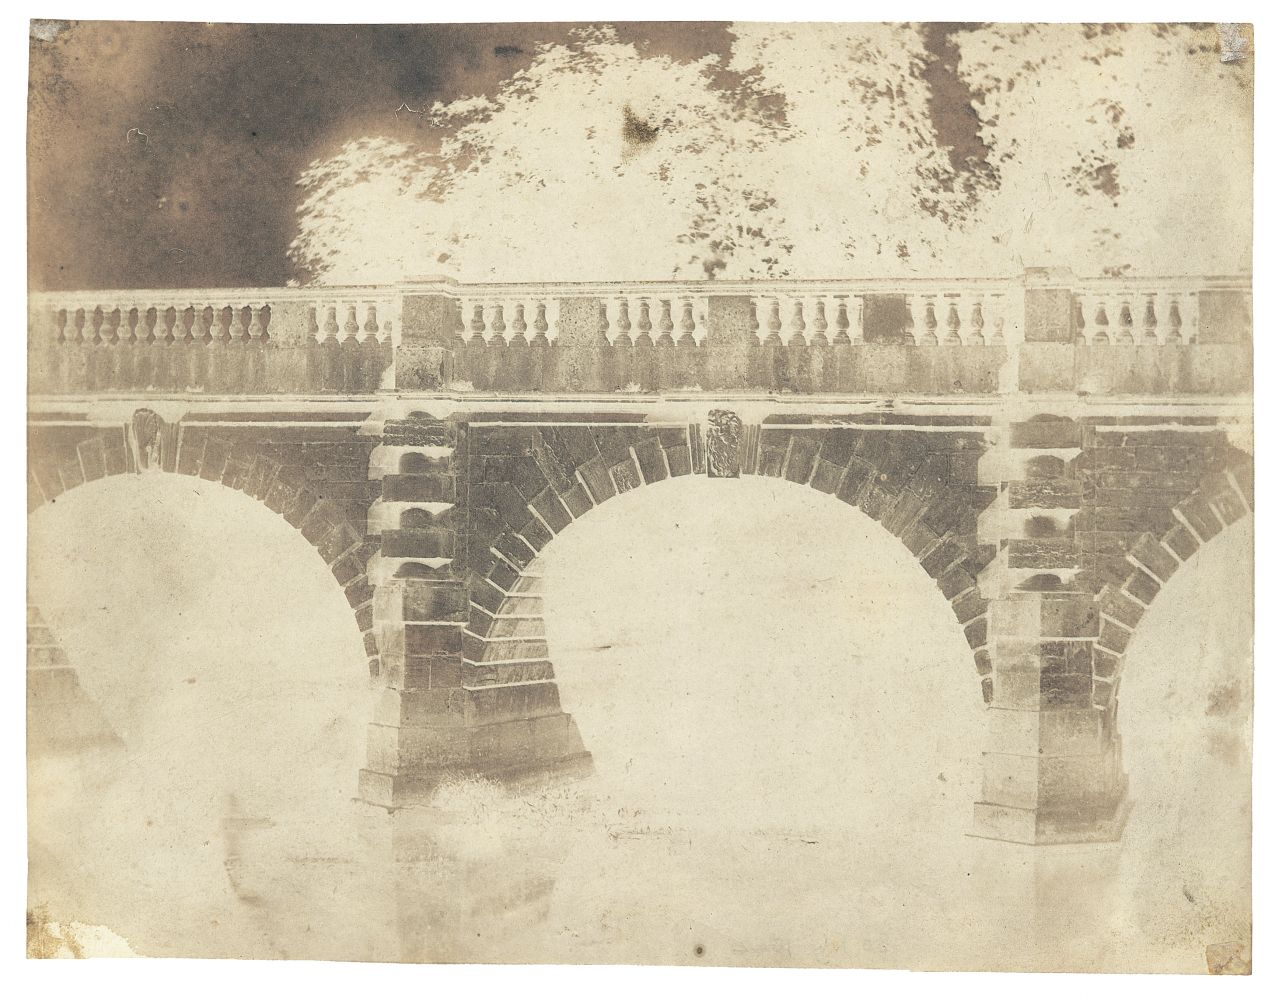 "William Henry Fox TALBOT (English, 1800-1877) Magdalen Bridge, Oxford, 30 July 1842 Calotype negative, waxed 16.2 x 20.7 cm Inscribed in pencil on verso ""30 July 1842"""